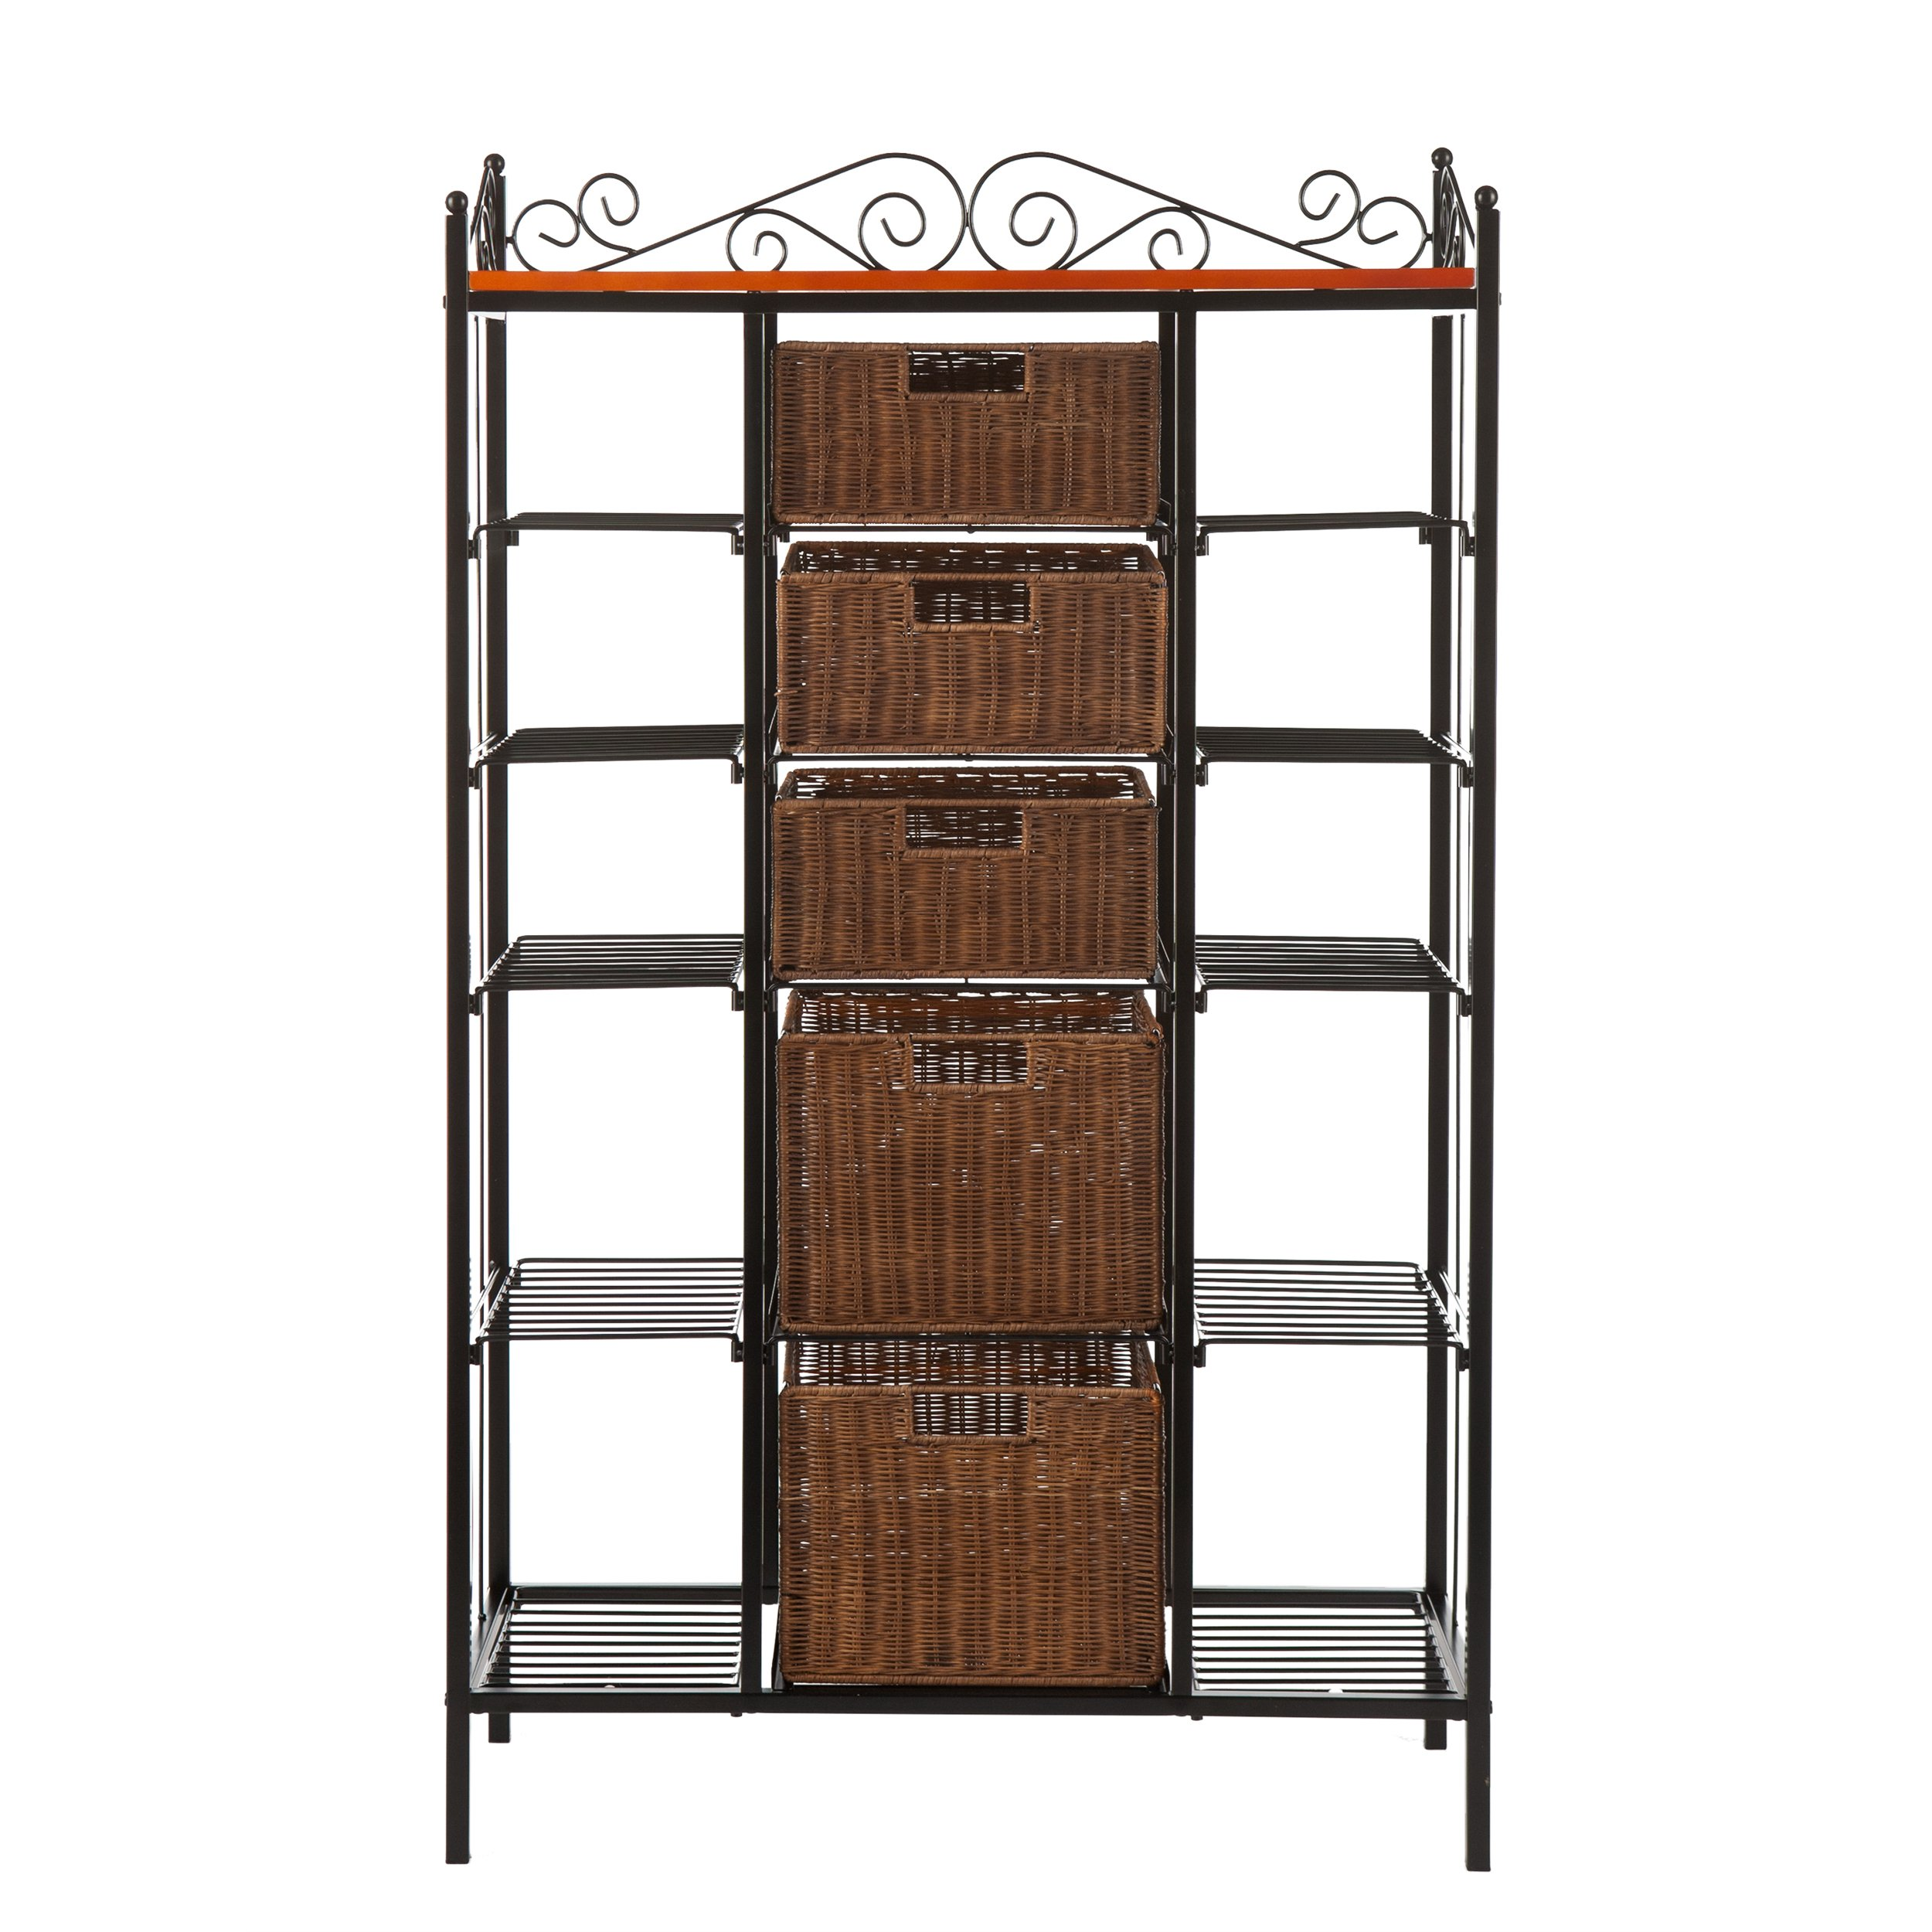 SEI Manilla 5-Drawer Baker's Rack by Southern Enterprises, Inc. (Image #1)